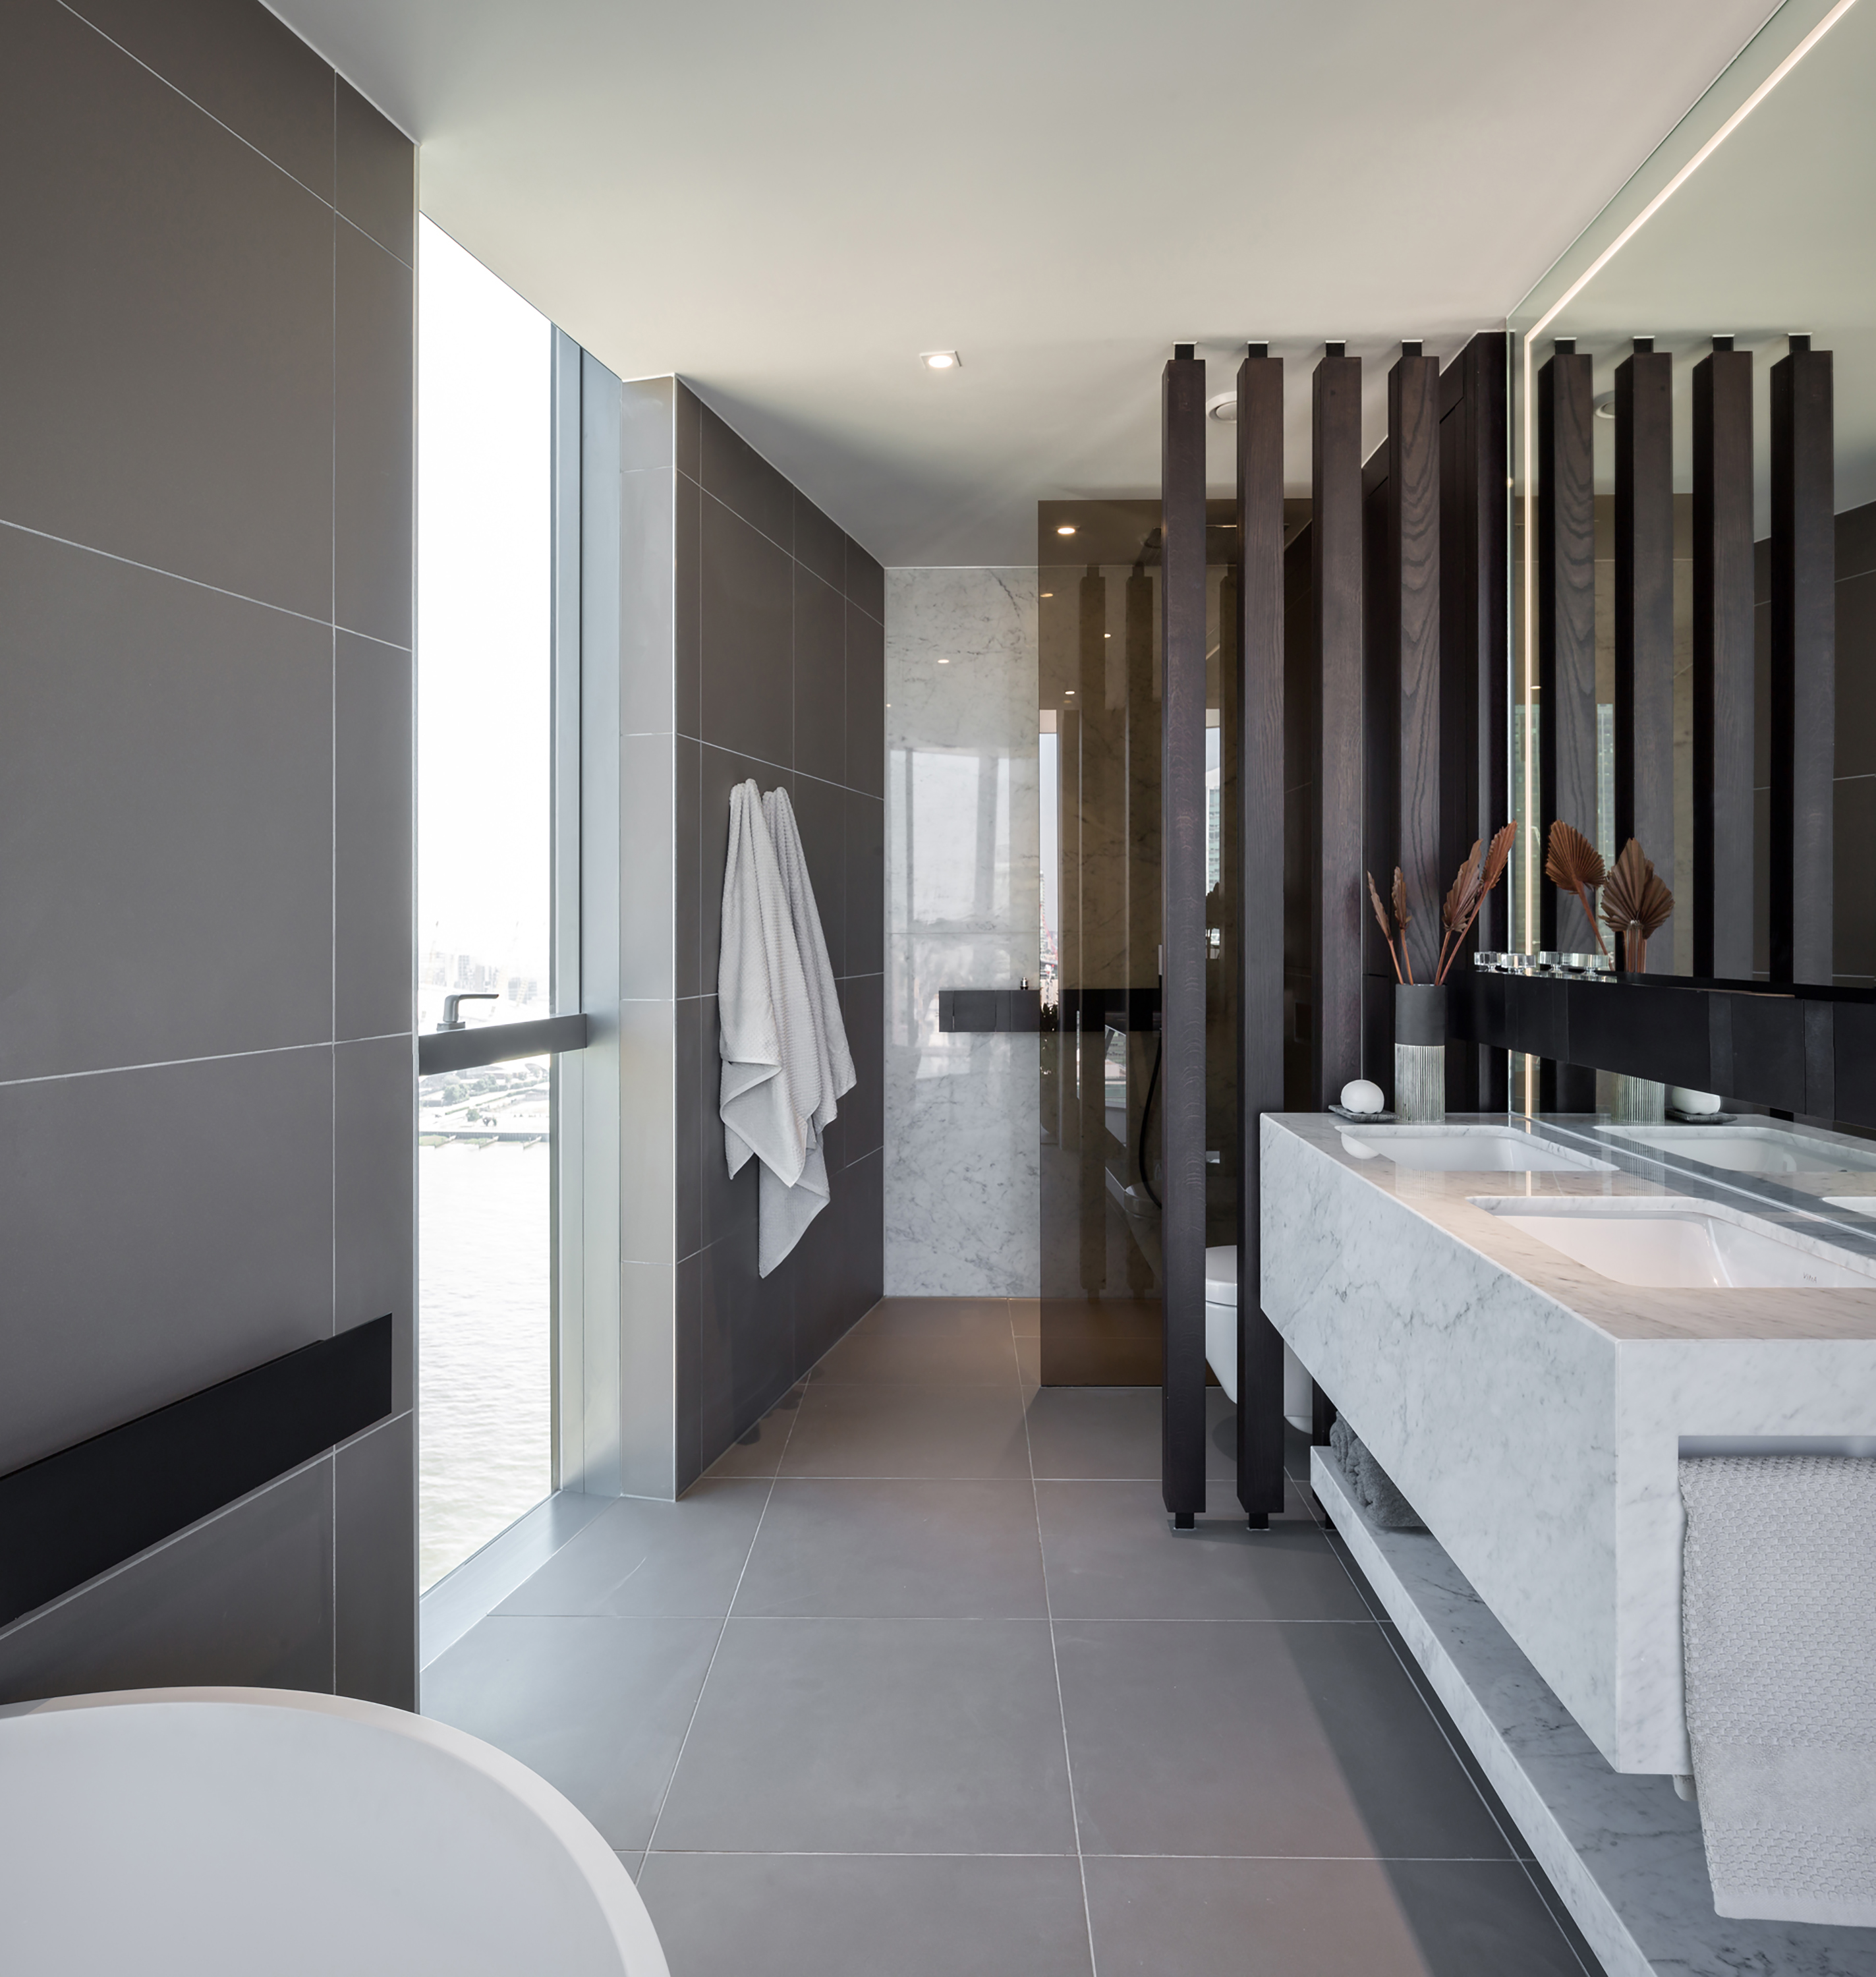 Specification of kitchen and bathroom interior design in london penthouse